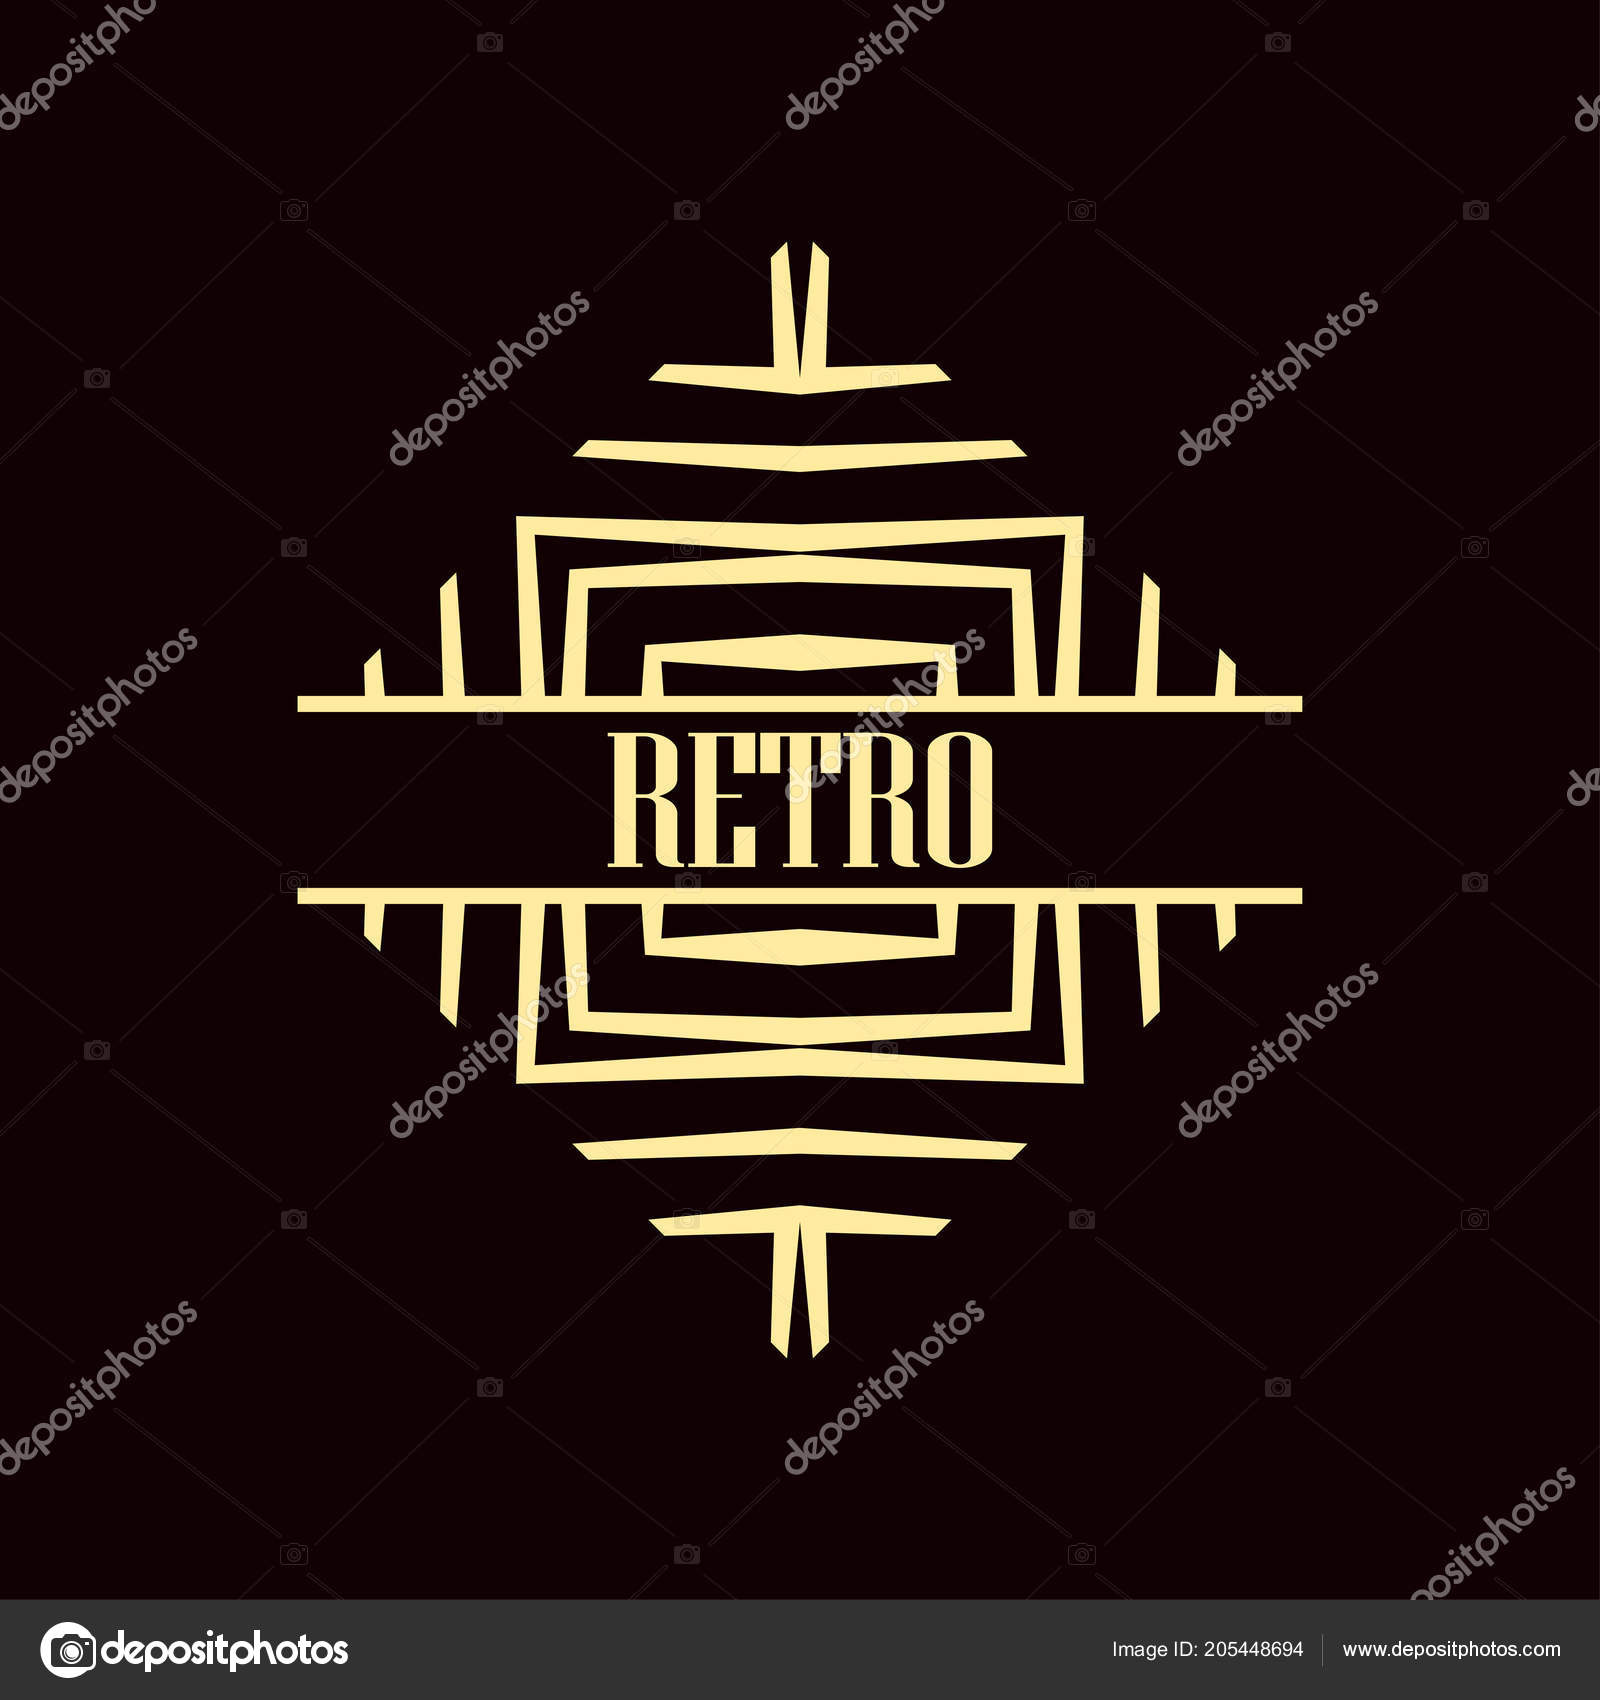 art deco logo stock vector paykvector 205448694